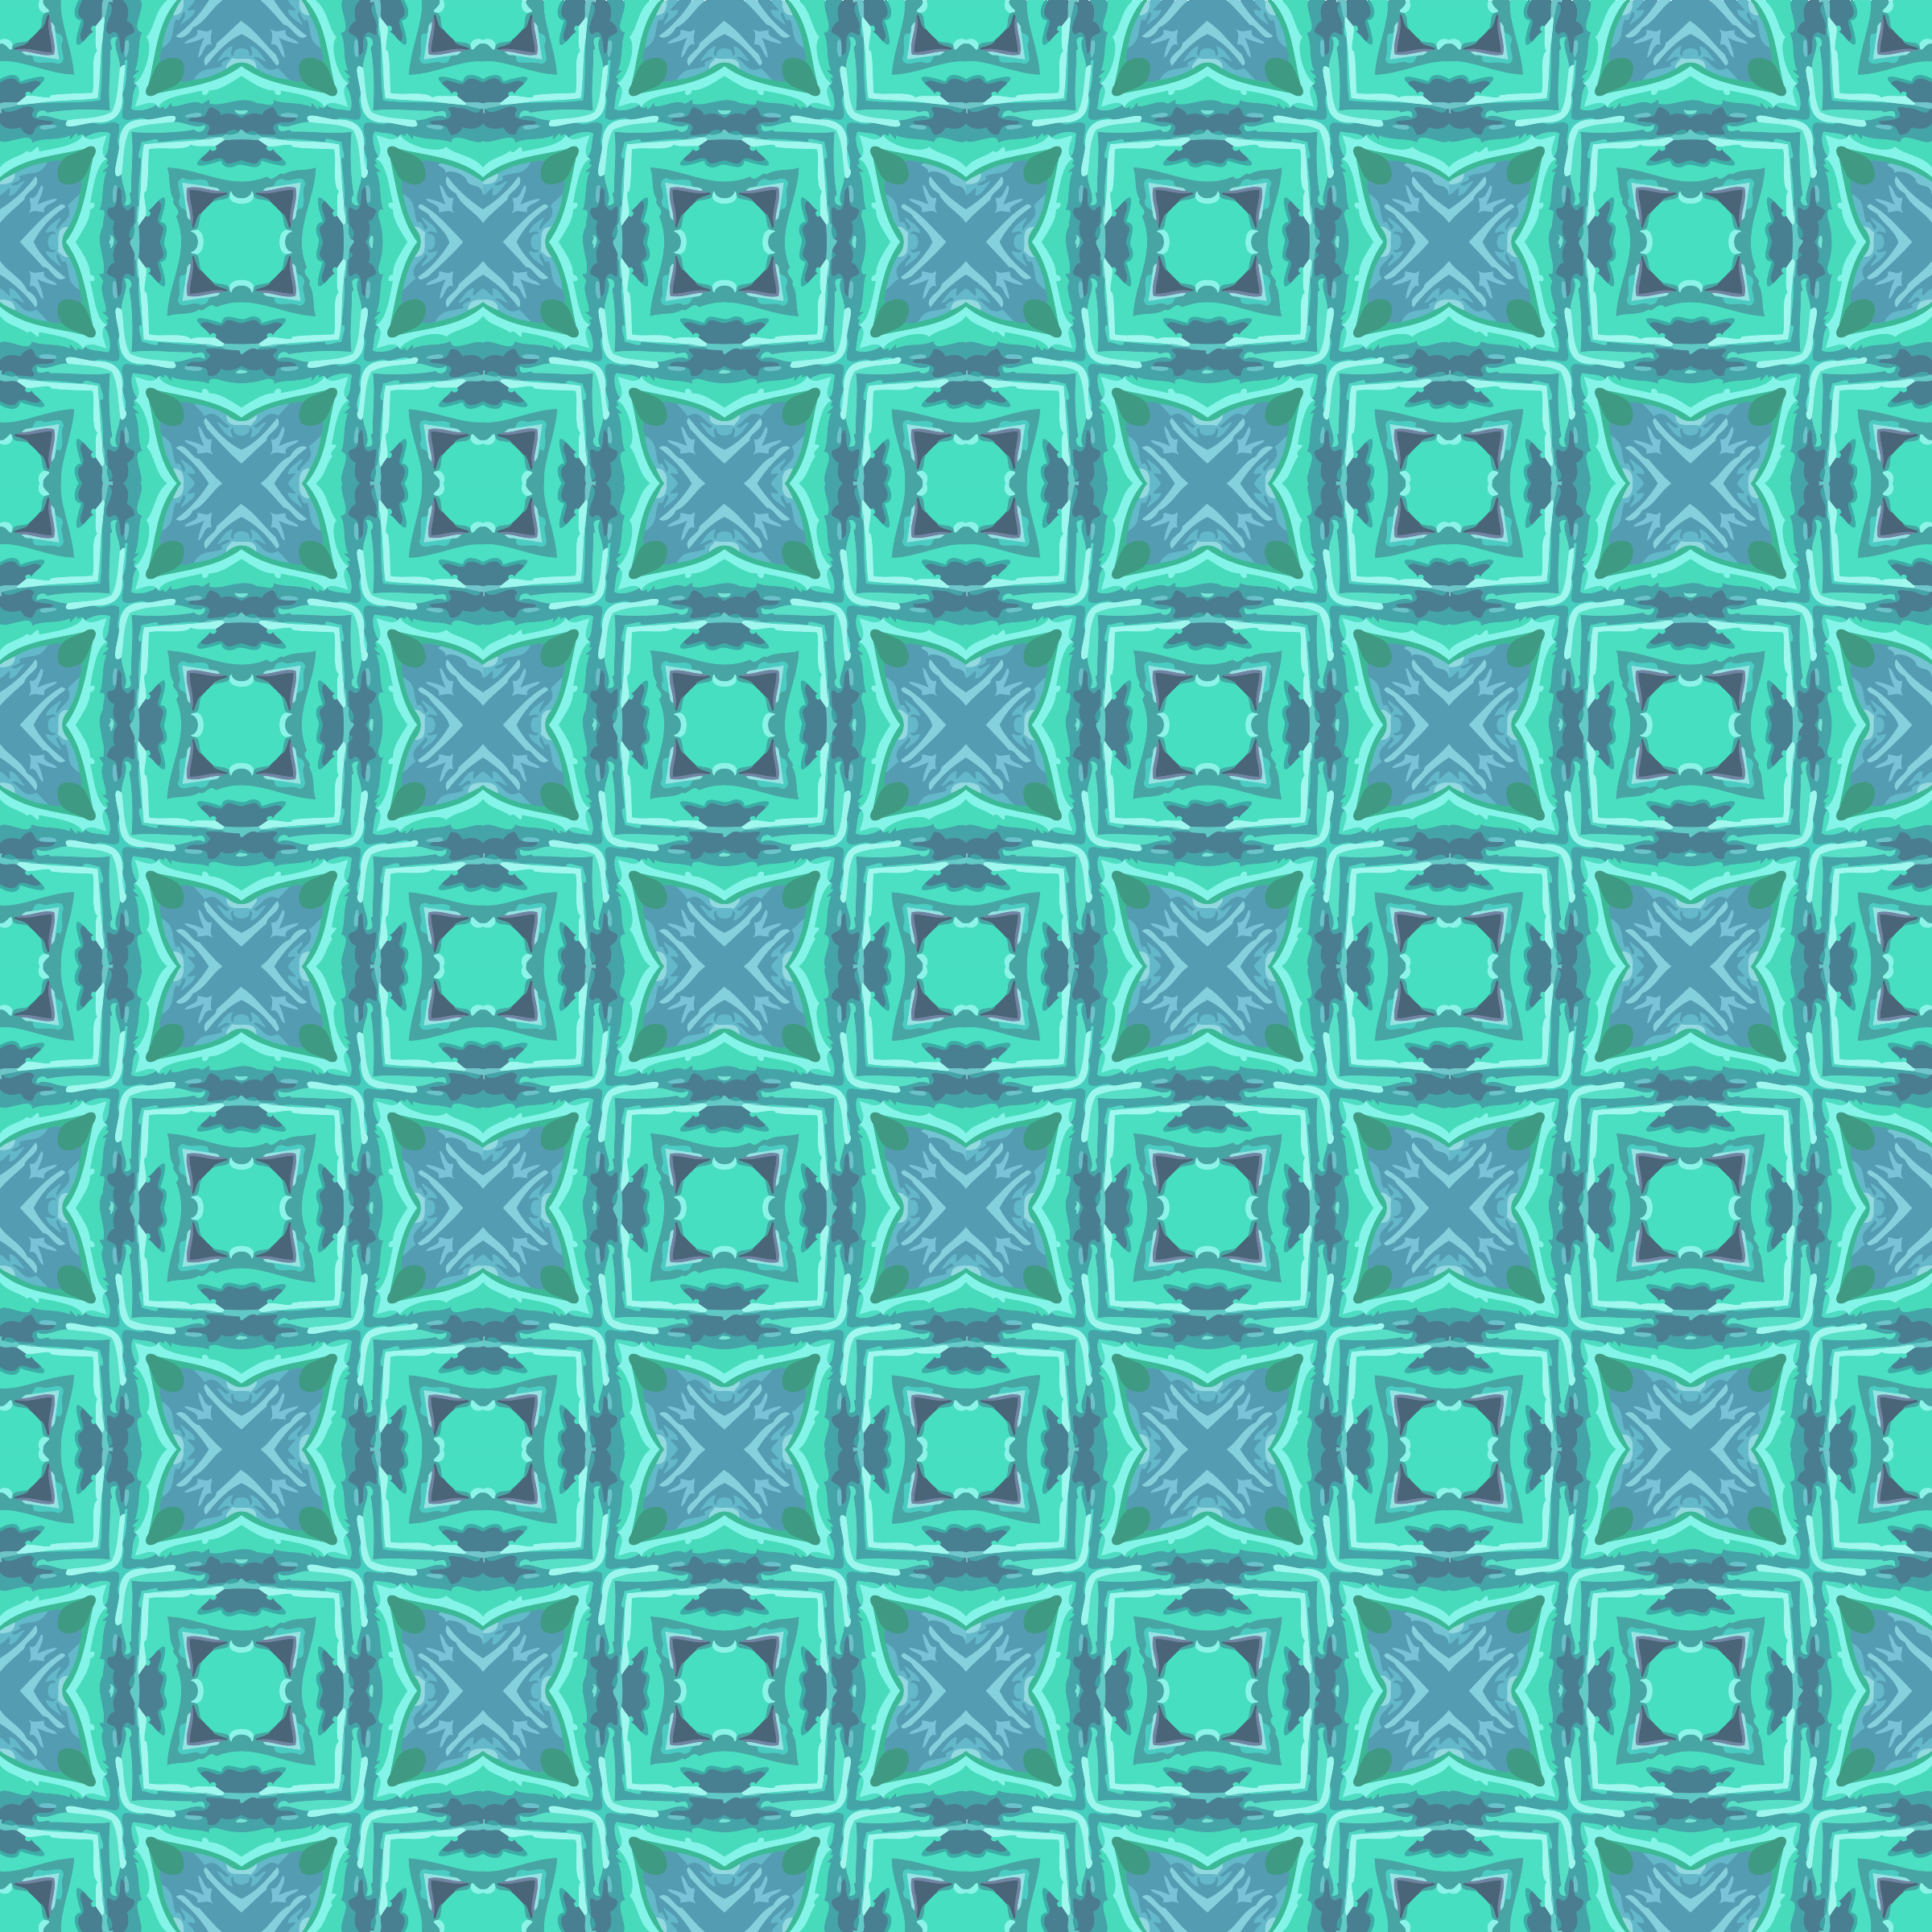 Background pattern 170 (colour 2) by Firkin